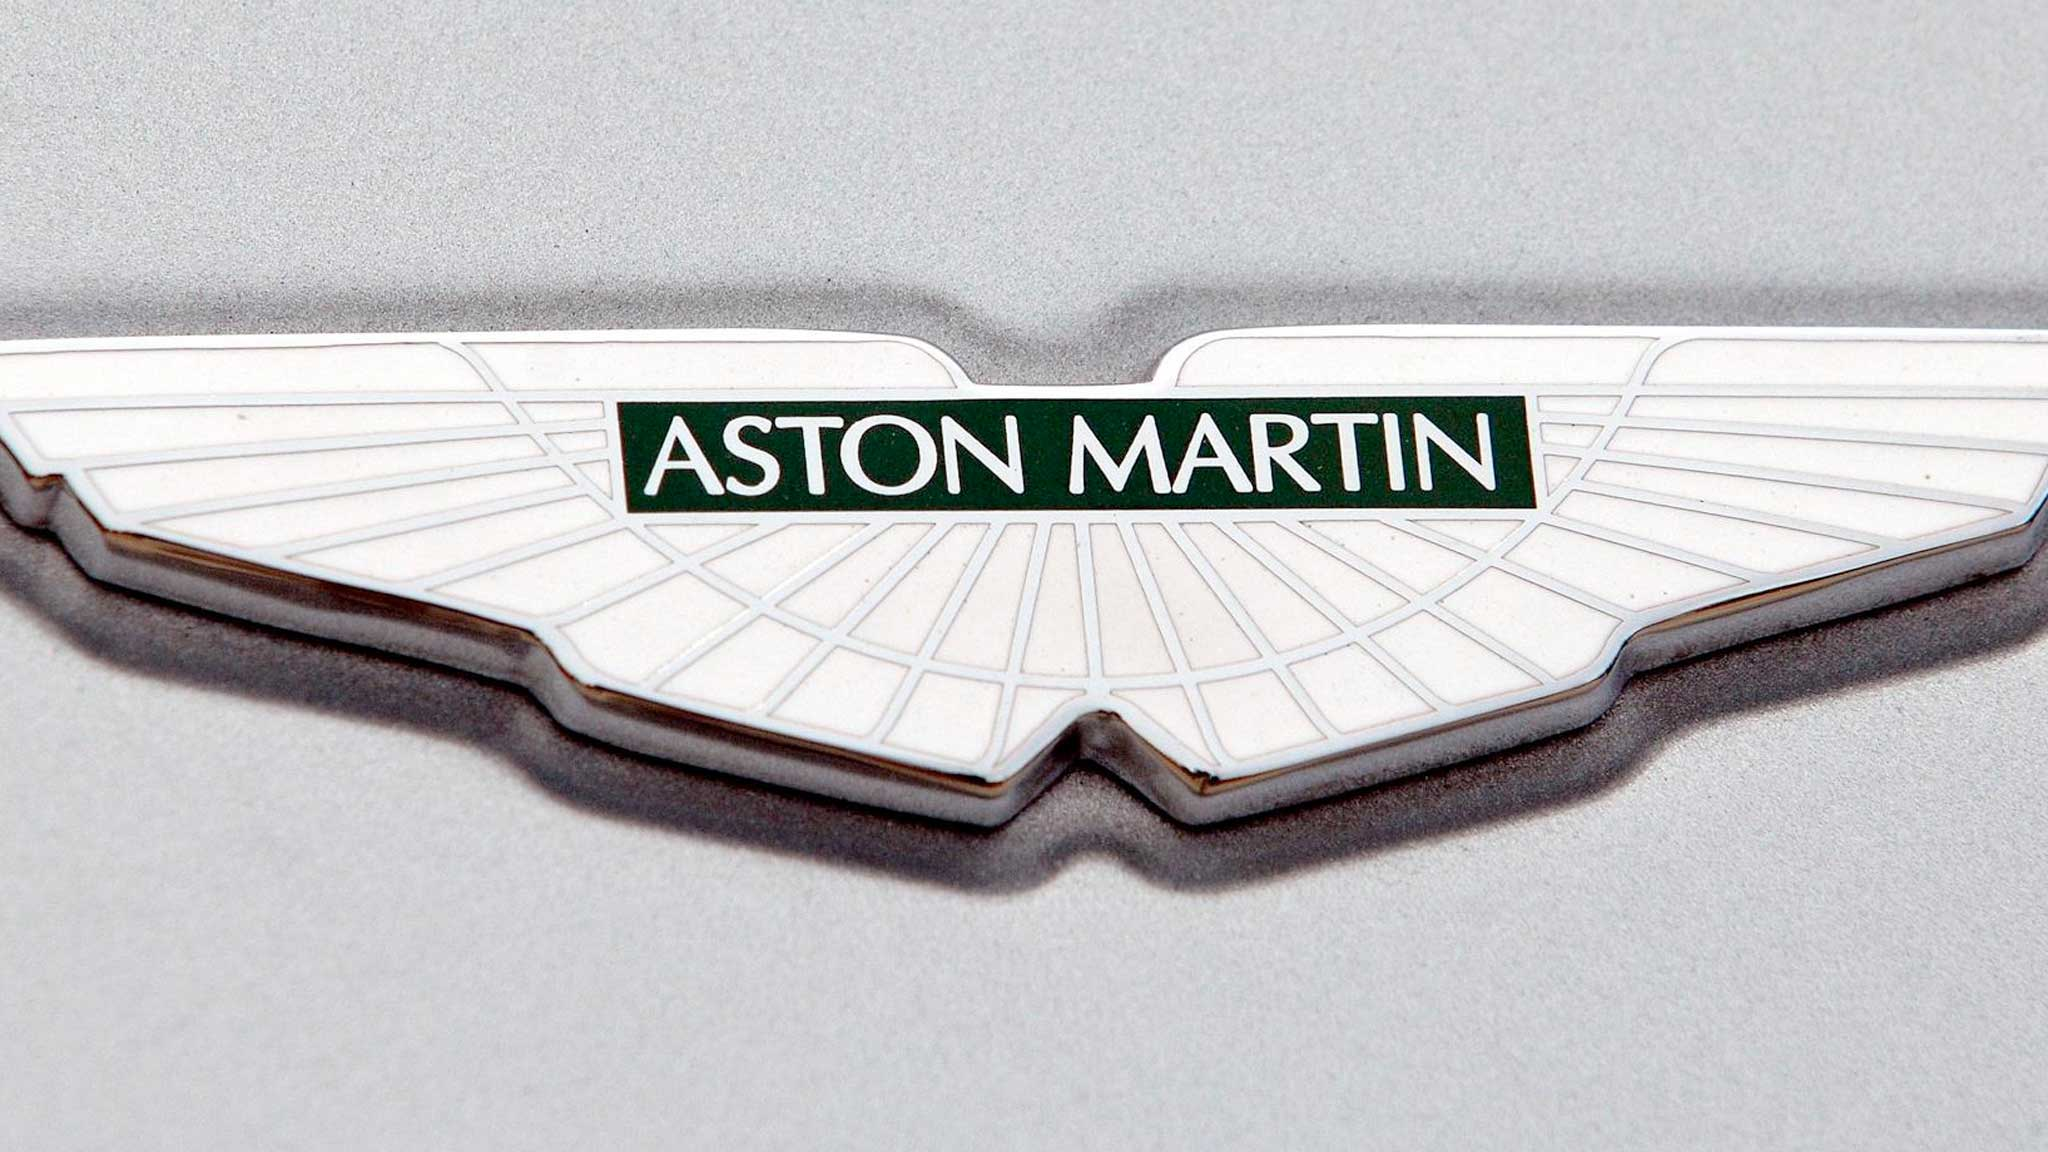 Investindustrial Agrees Aston Martin Deal Financial Times